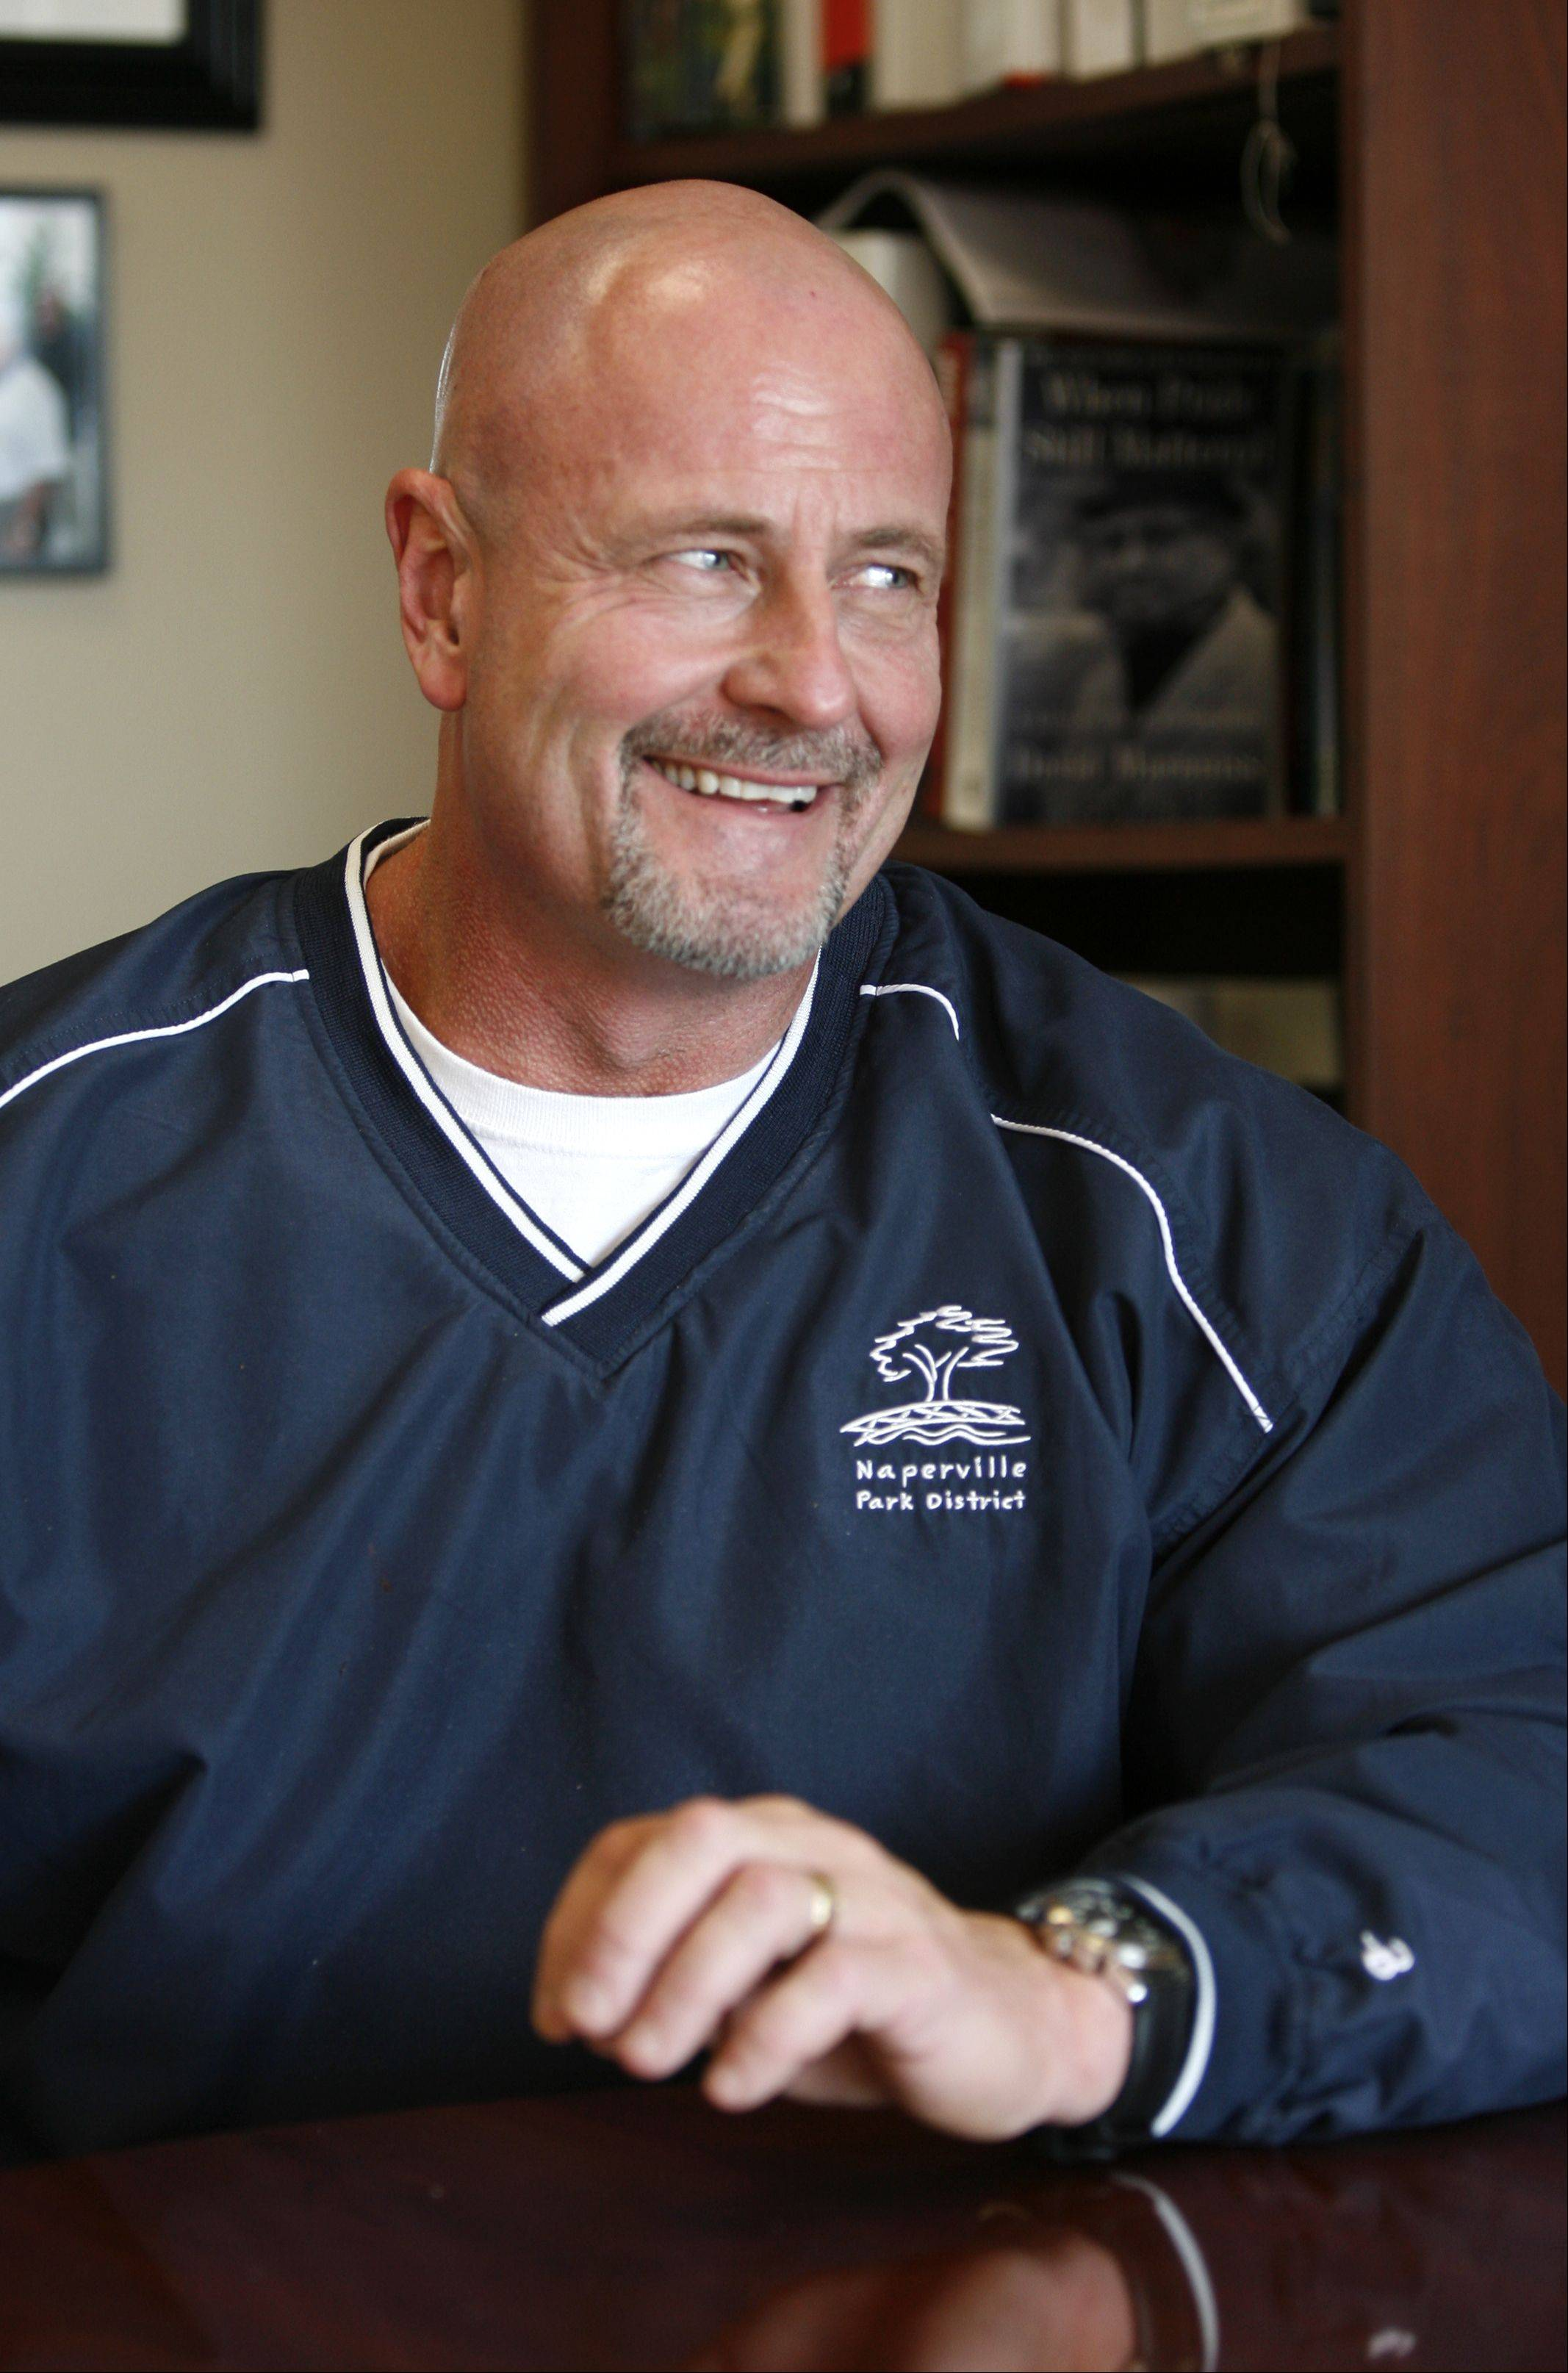 Ray McGury will continue to lead the Naperville Park District through 2015.